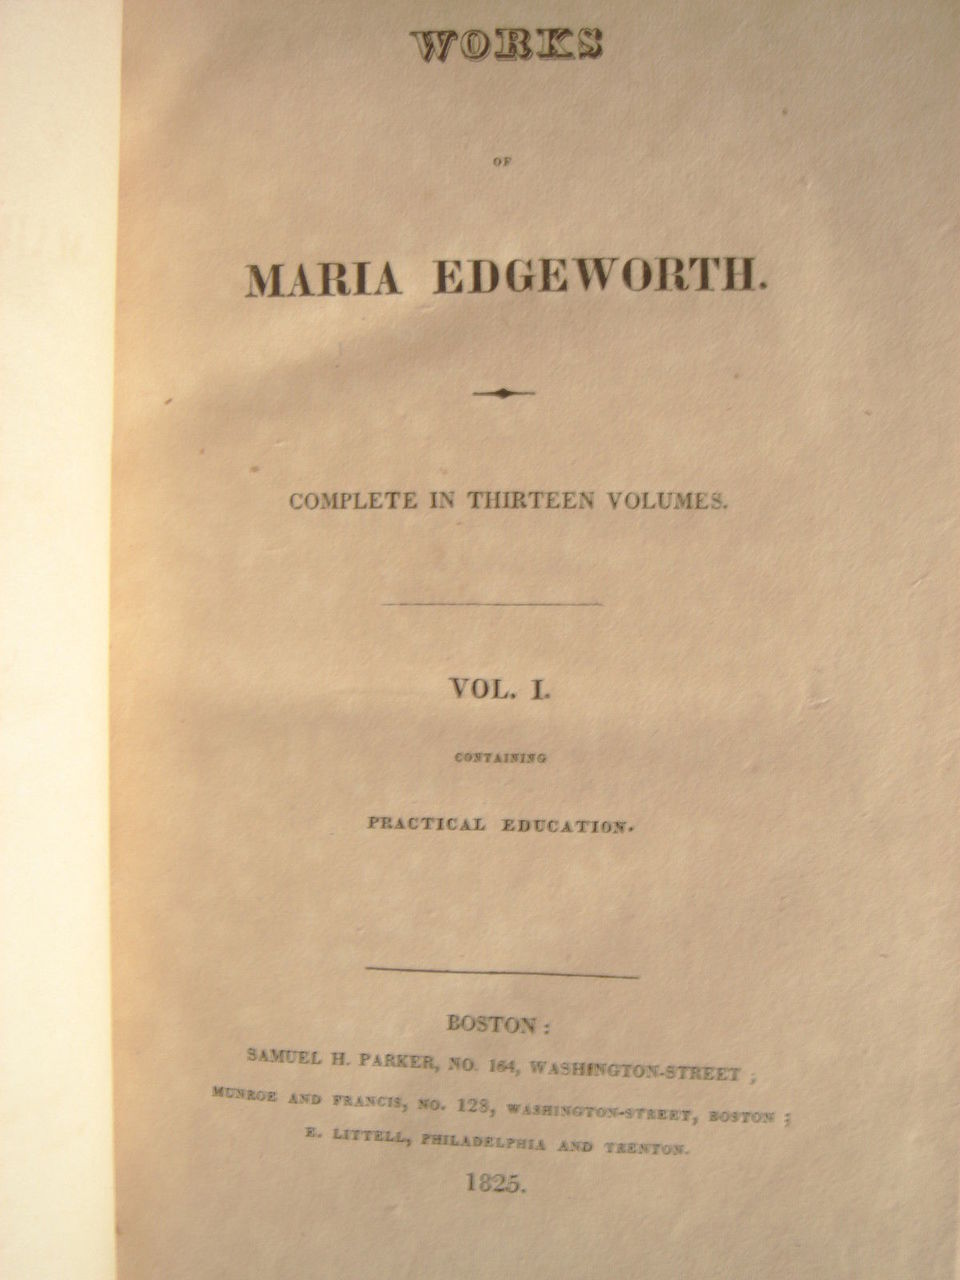 COMPLETE WORKS OF MARIA EDGEWORTH - 1825 [12 Vols]